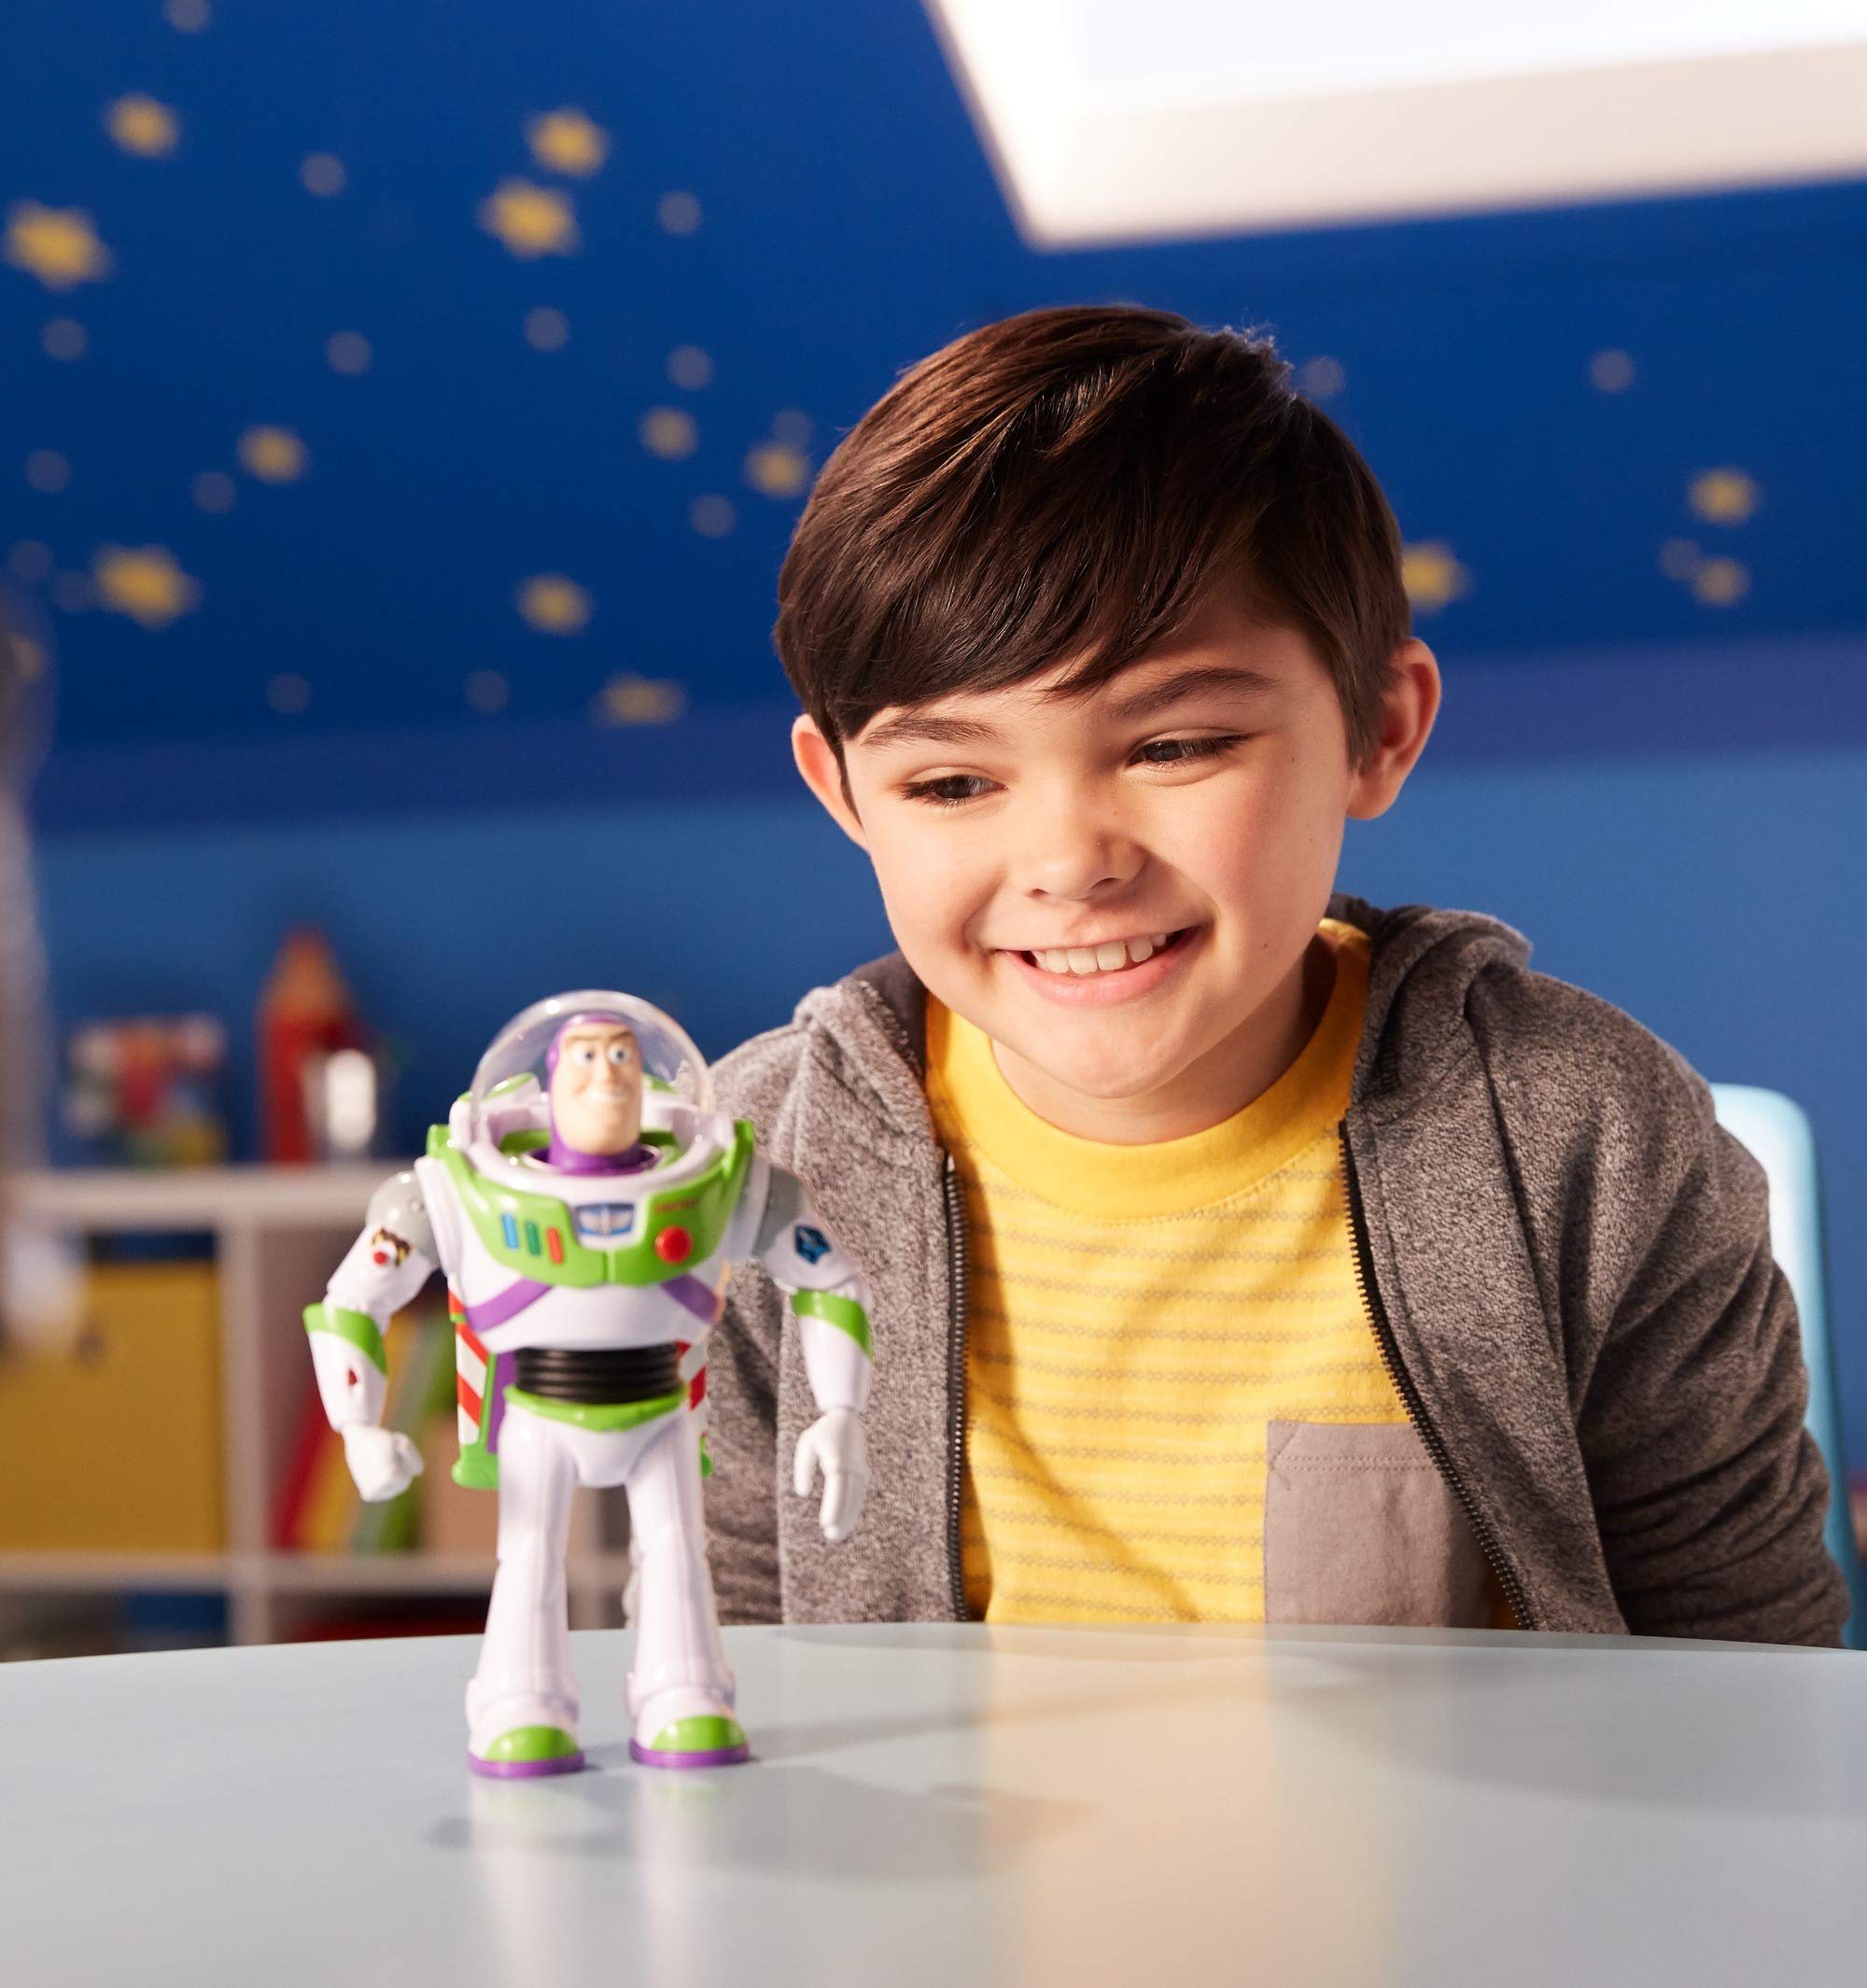 Disney Pixar Toy Story Ultimate Walking Buzz Lightyear, 7'' by Toy Story (Image #2)